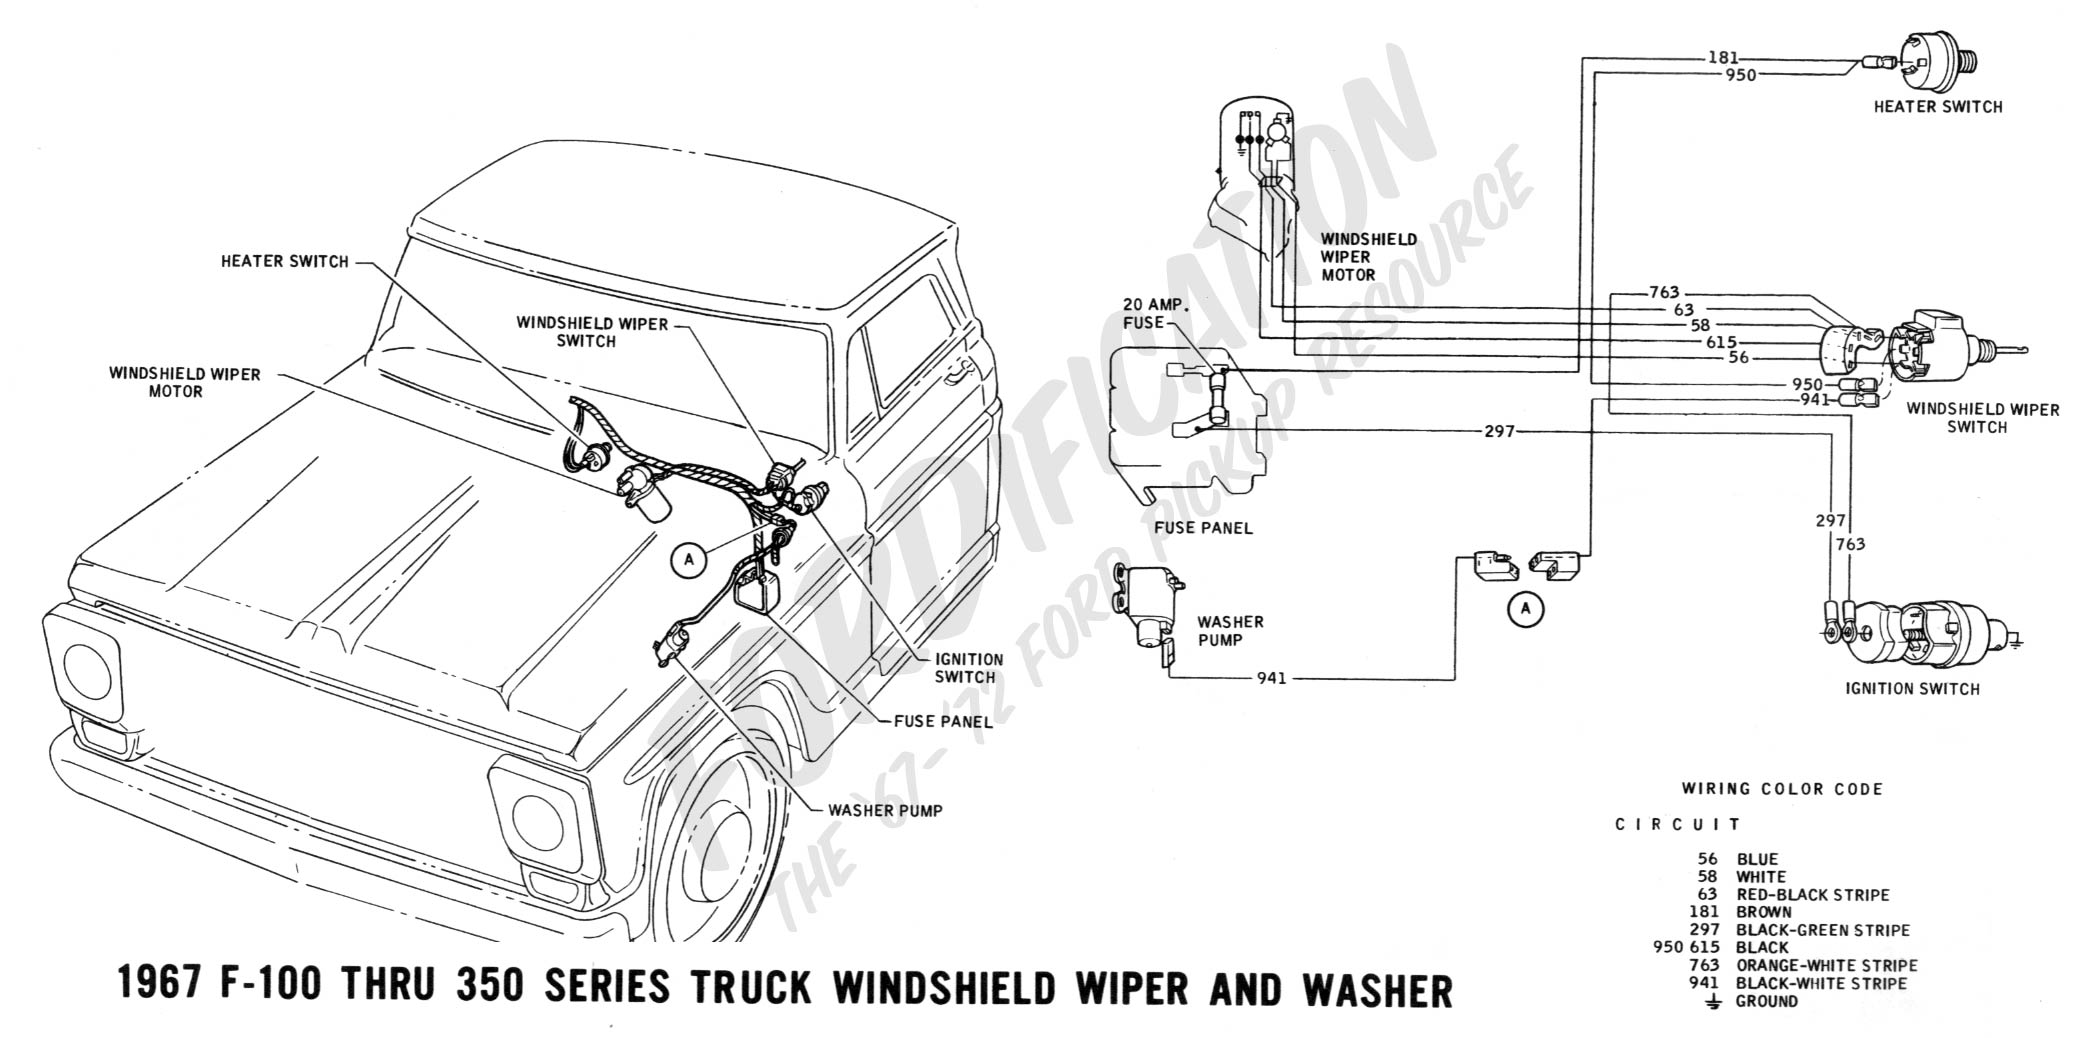 1986 Ford F150 Fuse Box Diagram together with 1966 Mustang Wiring Diagrams further 1959 641 Workmaster Wiring Diagram moreover Town Car Turn Signal Switch Diagram additionally HW2811. on 1965 ford truck electrical wiring